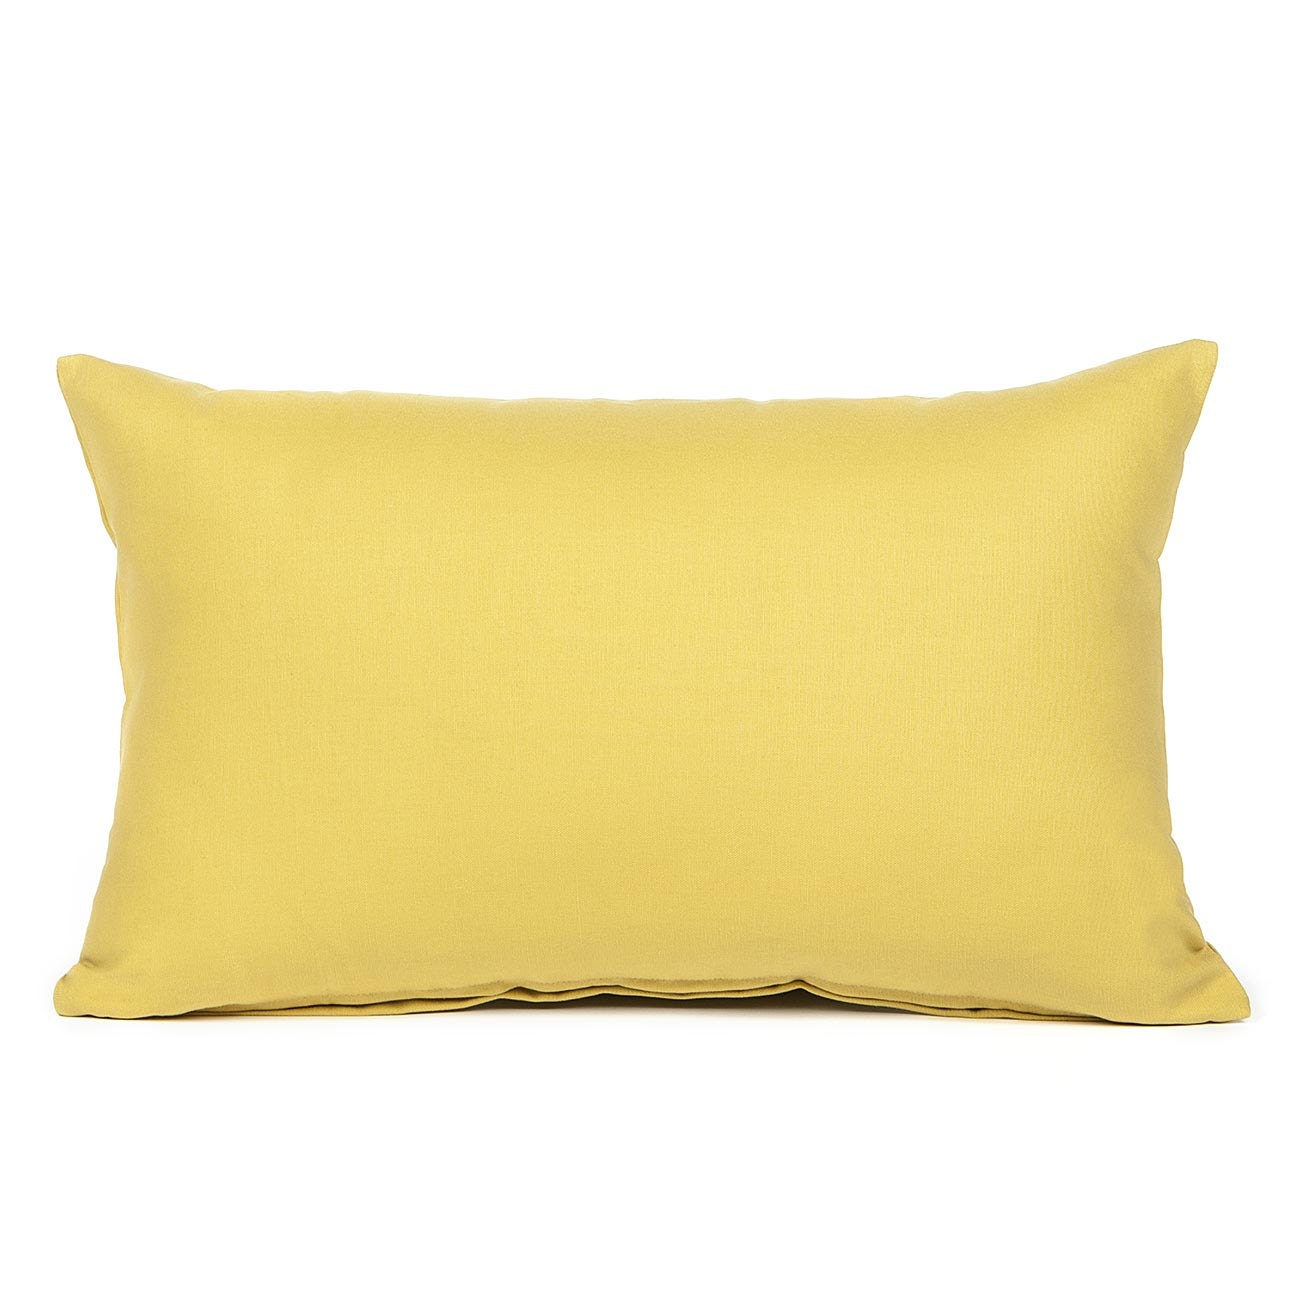 Mustard Throw Pillow Covers : 12 X 20 Solid Mustard Yellow Oblong Throw Pillow Cover by BHDecor